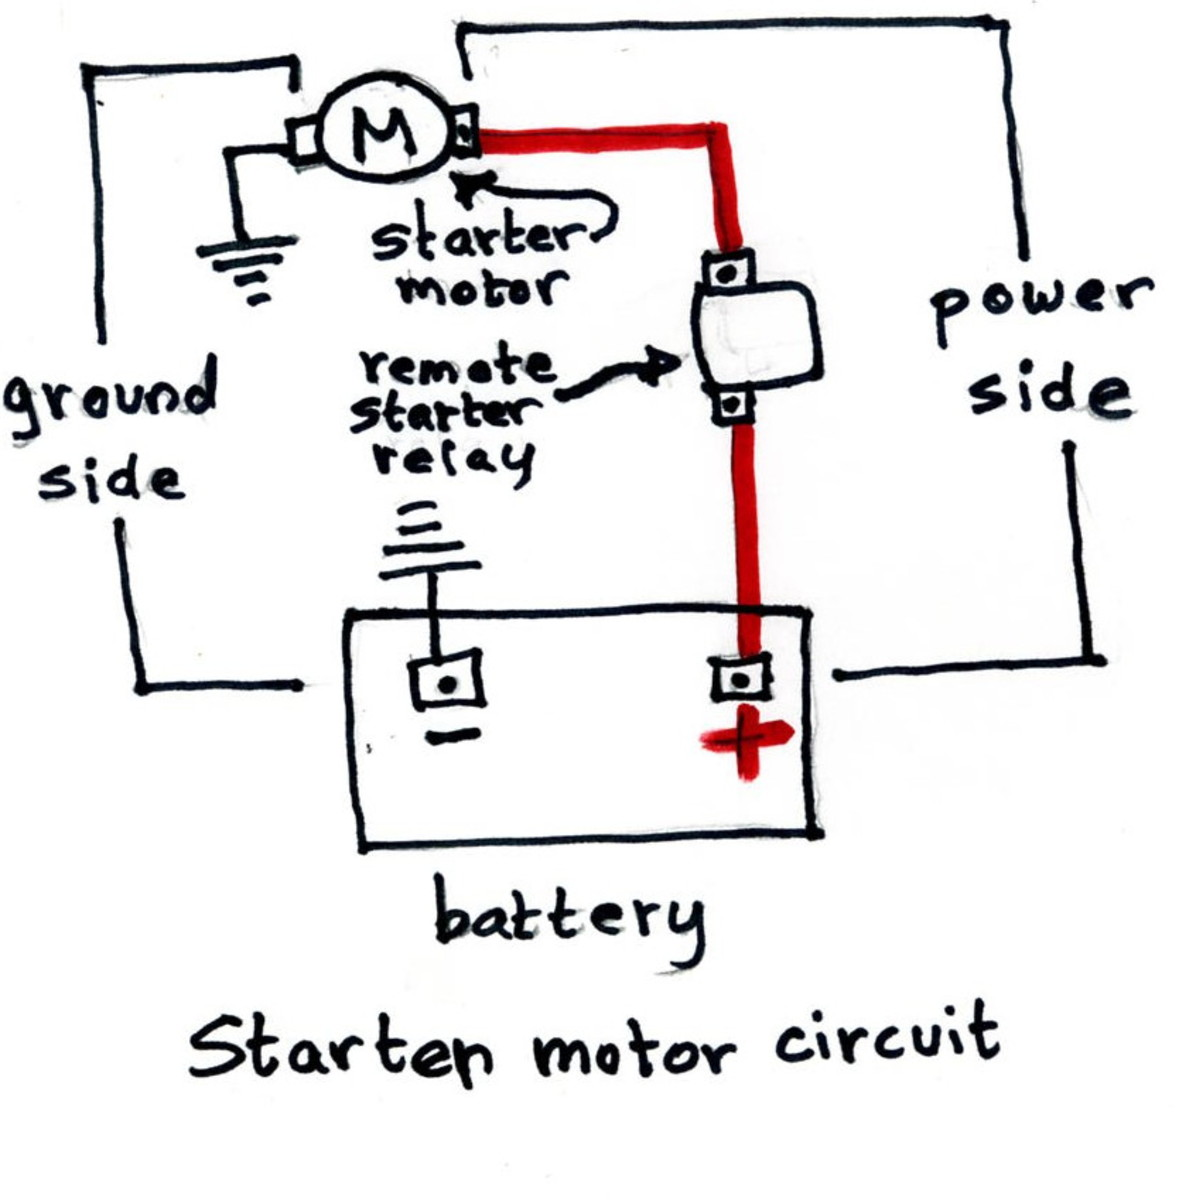 Figure 2: Starter circuit diagram.